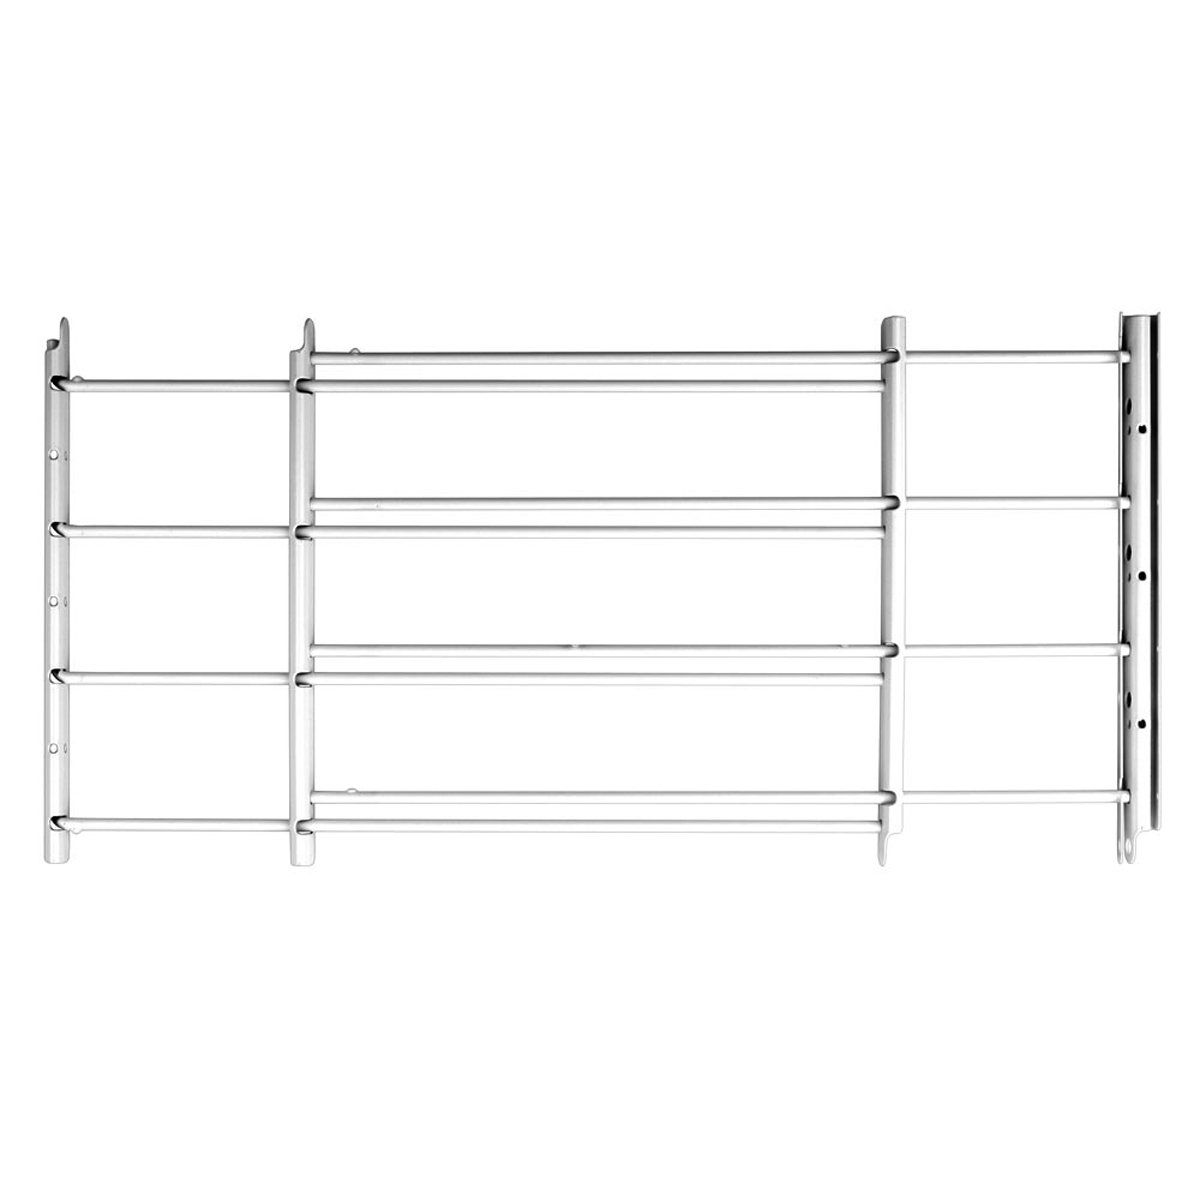 John Sterling 4Bar Basic Fixed Window Guard,14x14-24 Inches White by Knape & Vogt